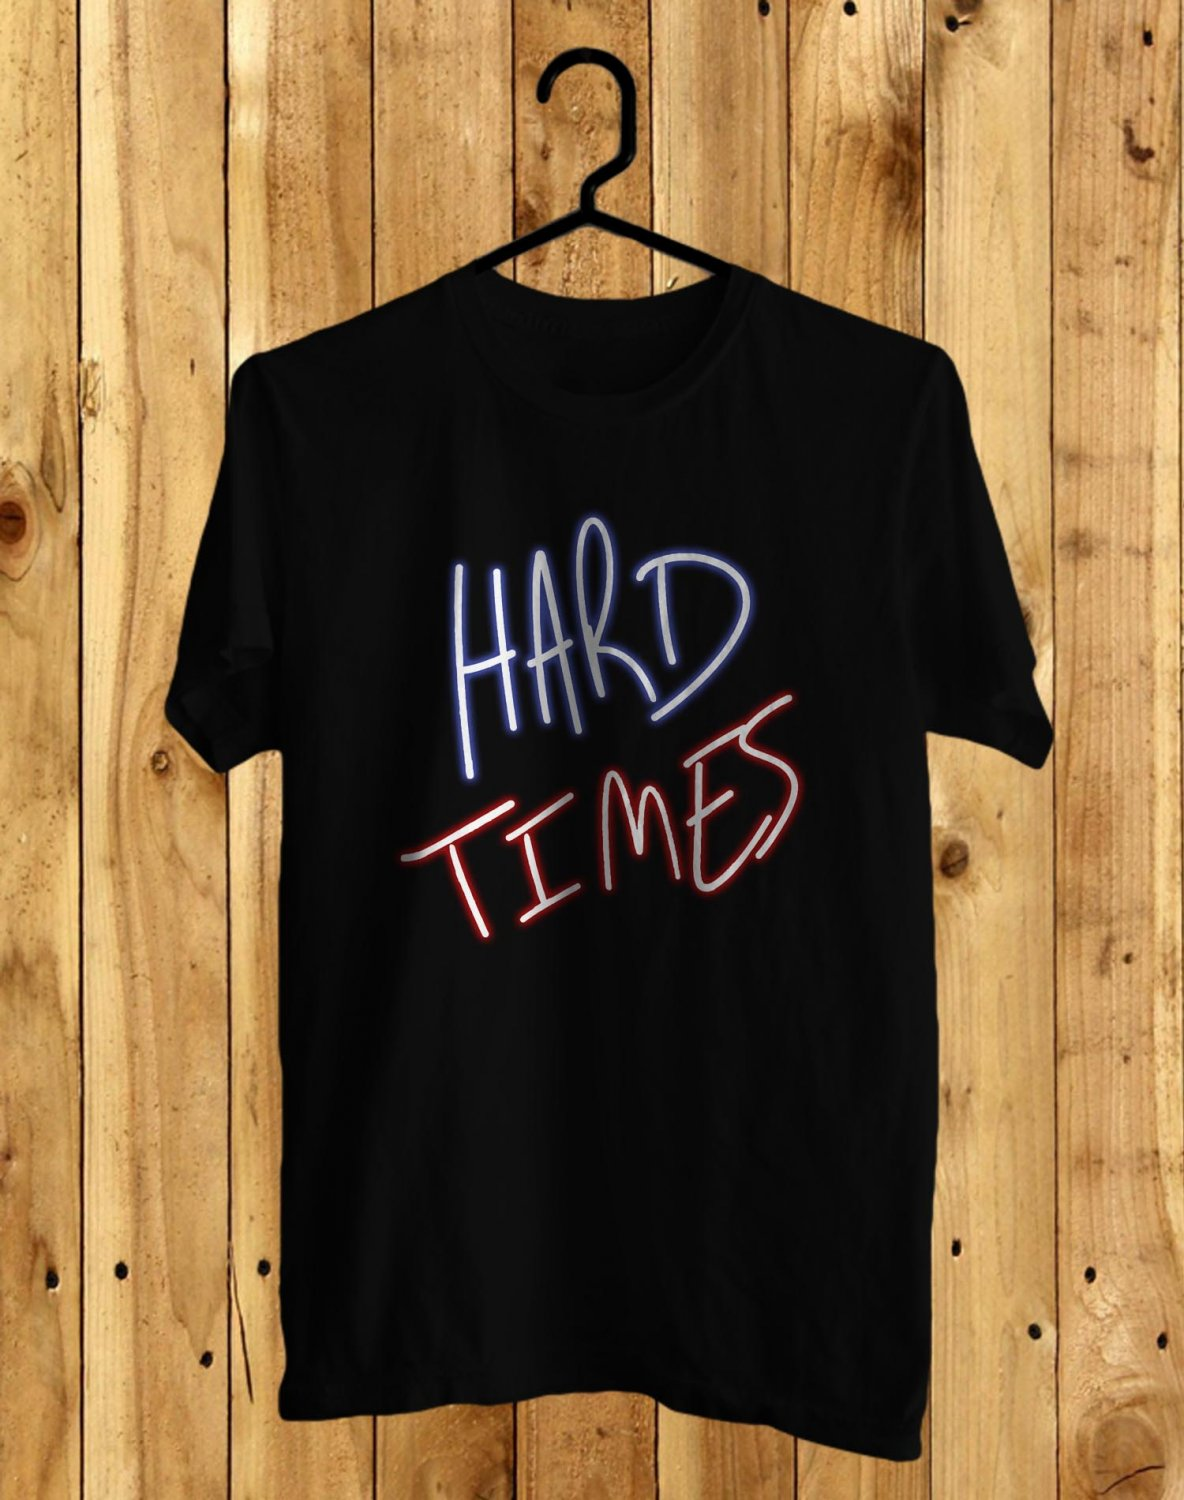 Paramore Hard Times Single Tour 2017 Black Tee's Front Side by Complexart